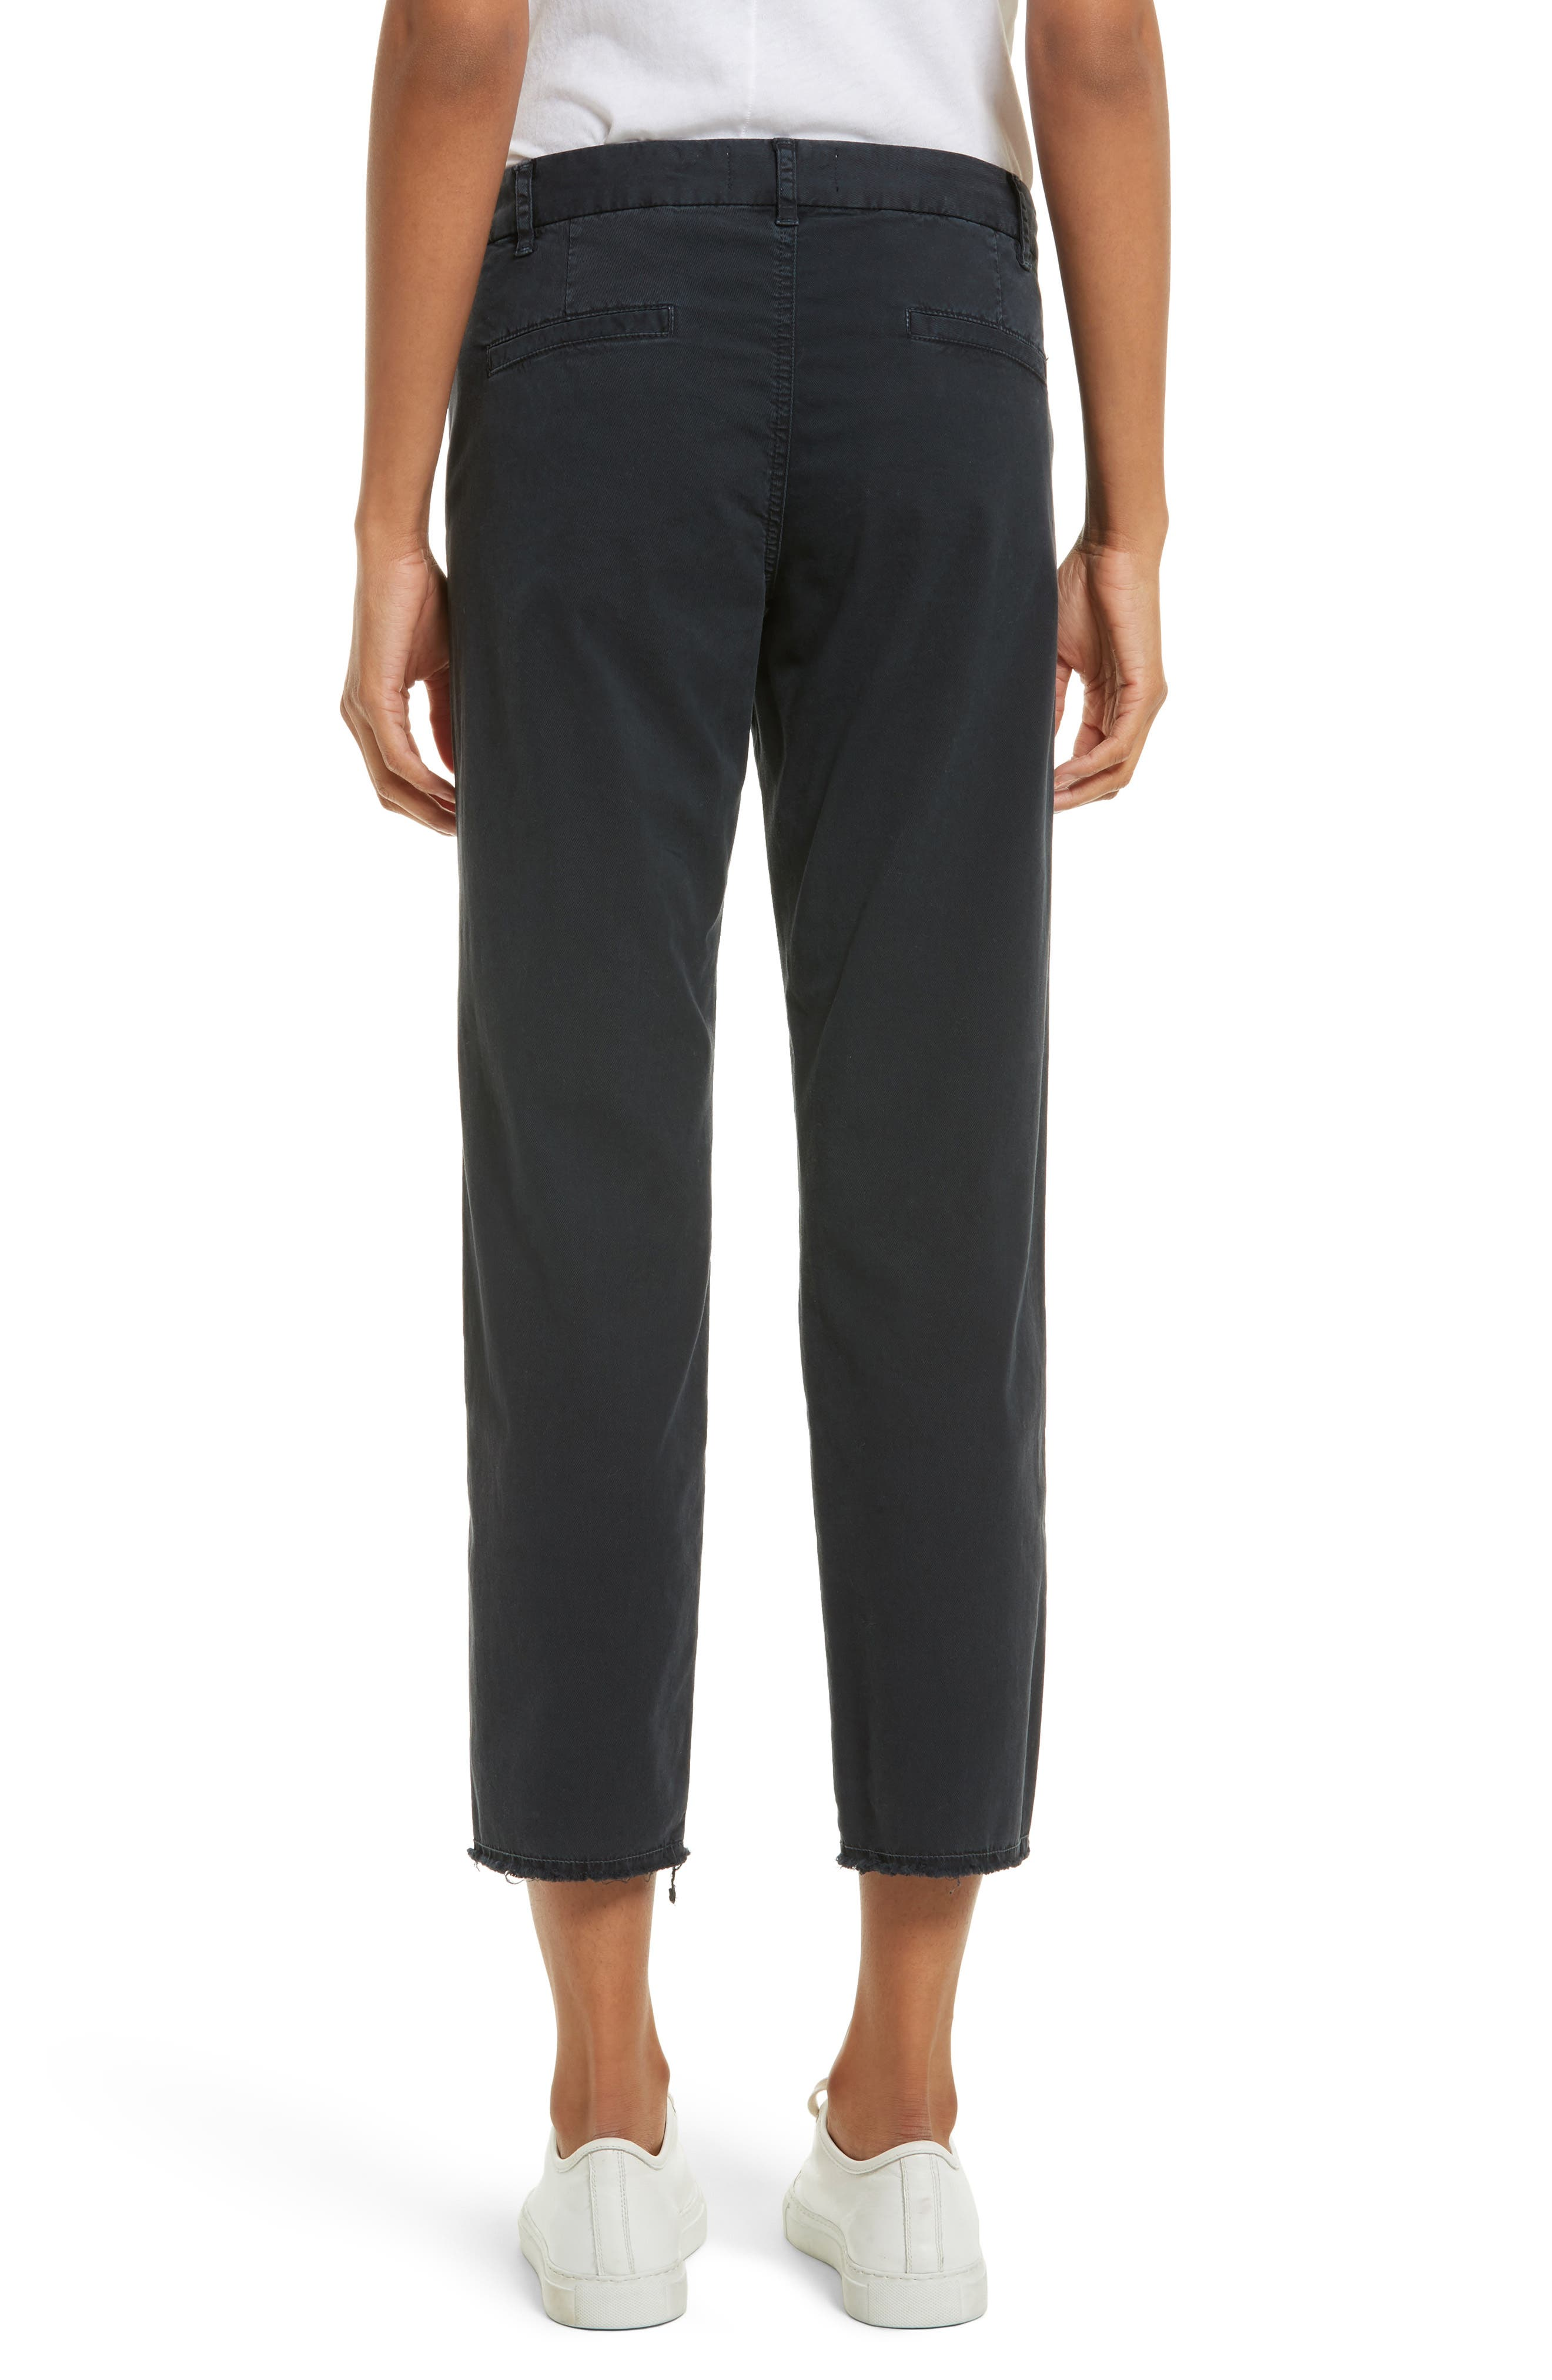 East Hampton Stretch Cotton Twill Crop Pants,                             Alternate thumbnail 2, color,                             DARK NAVY